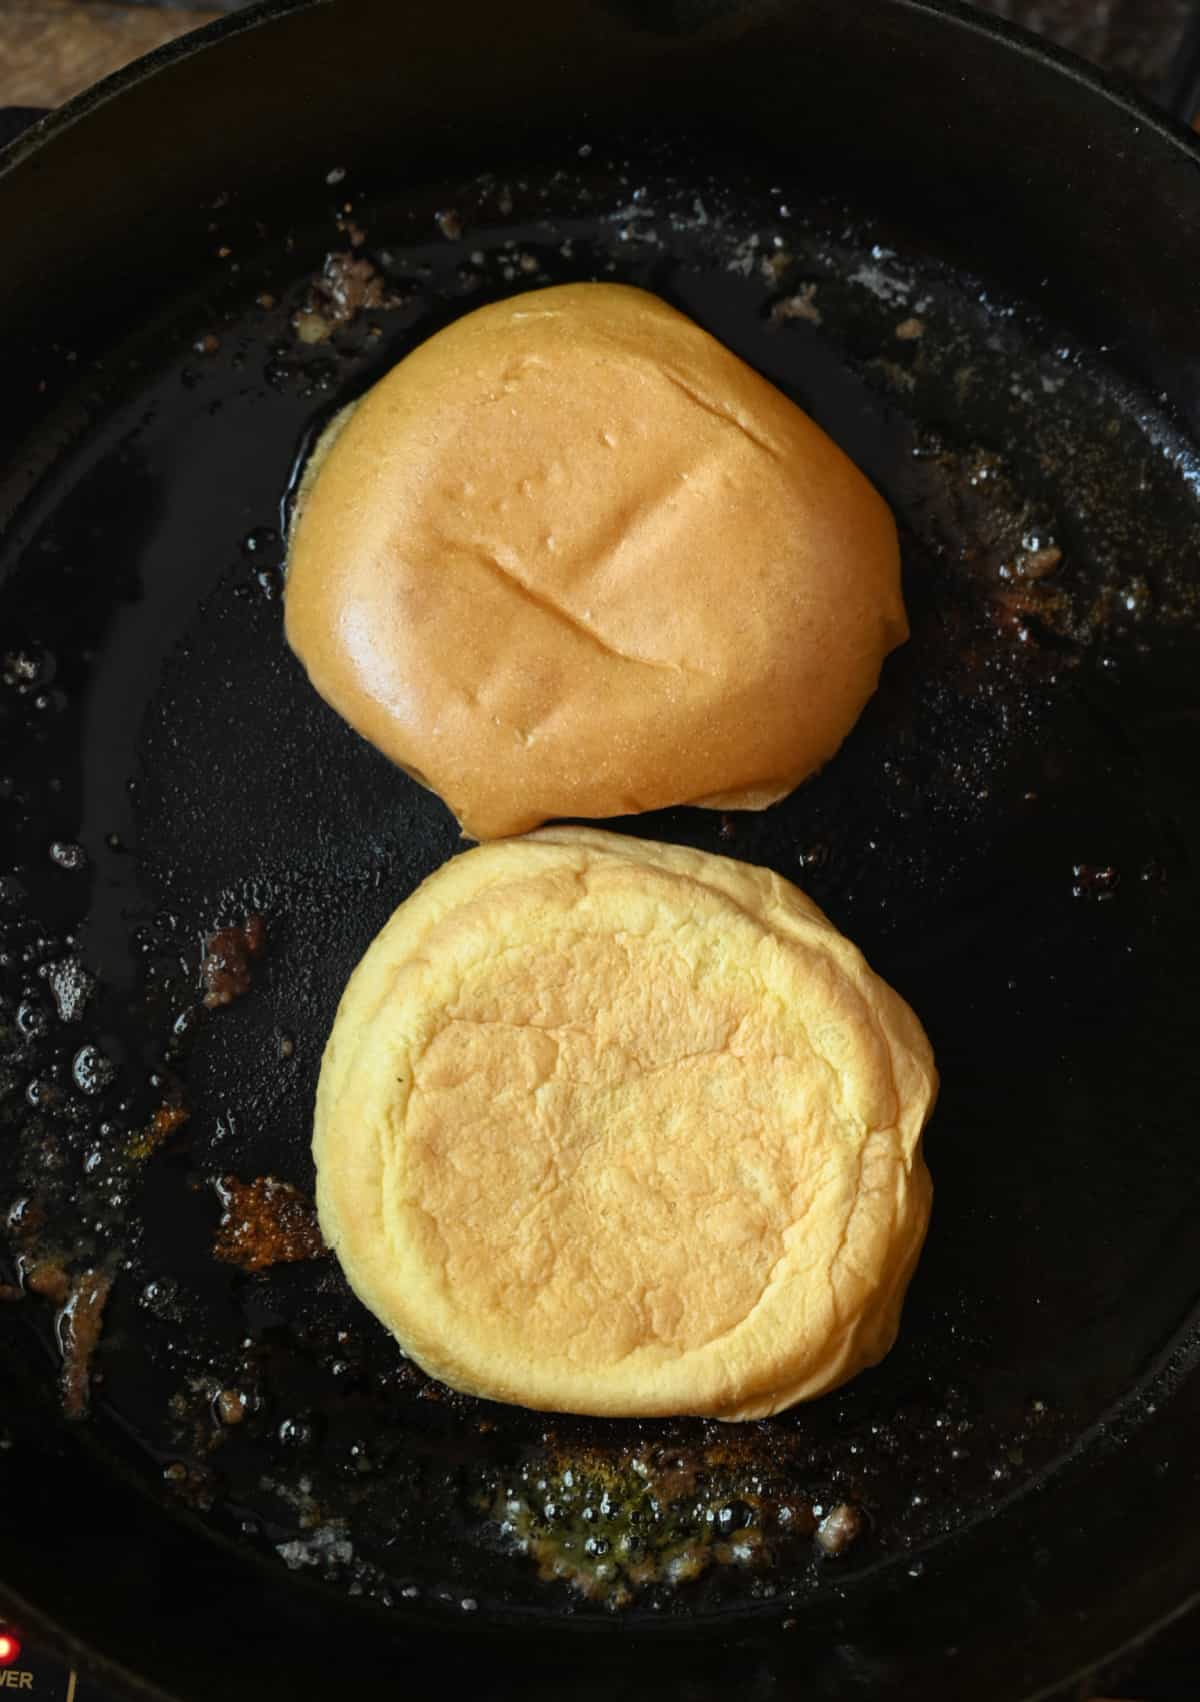 Two brioche buns face down in a hot skillet.